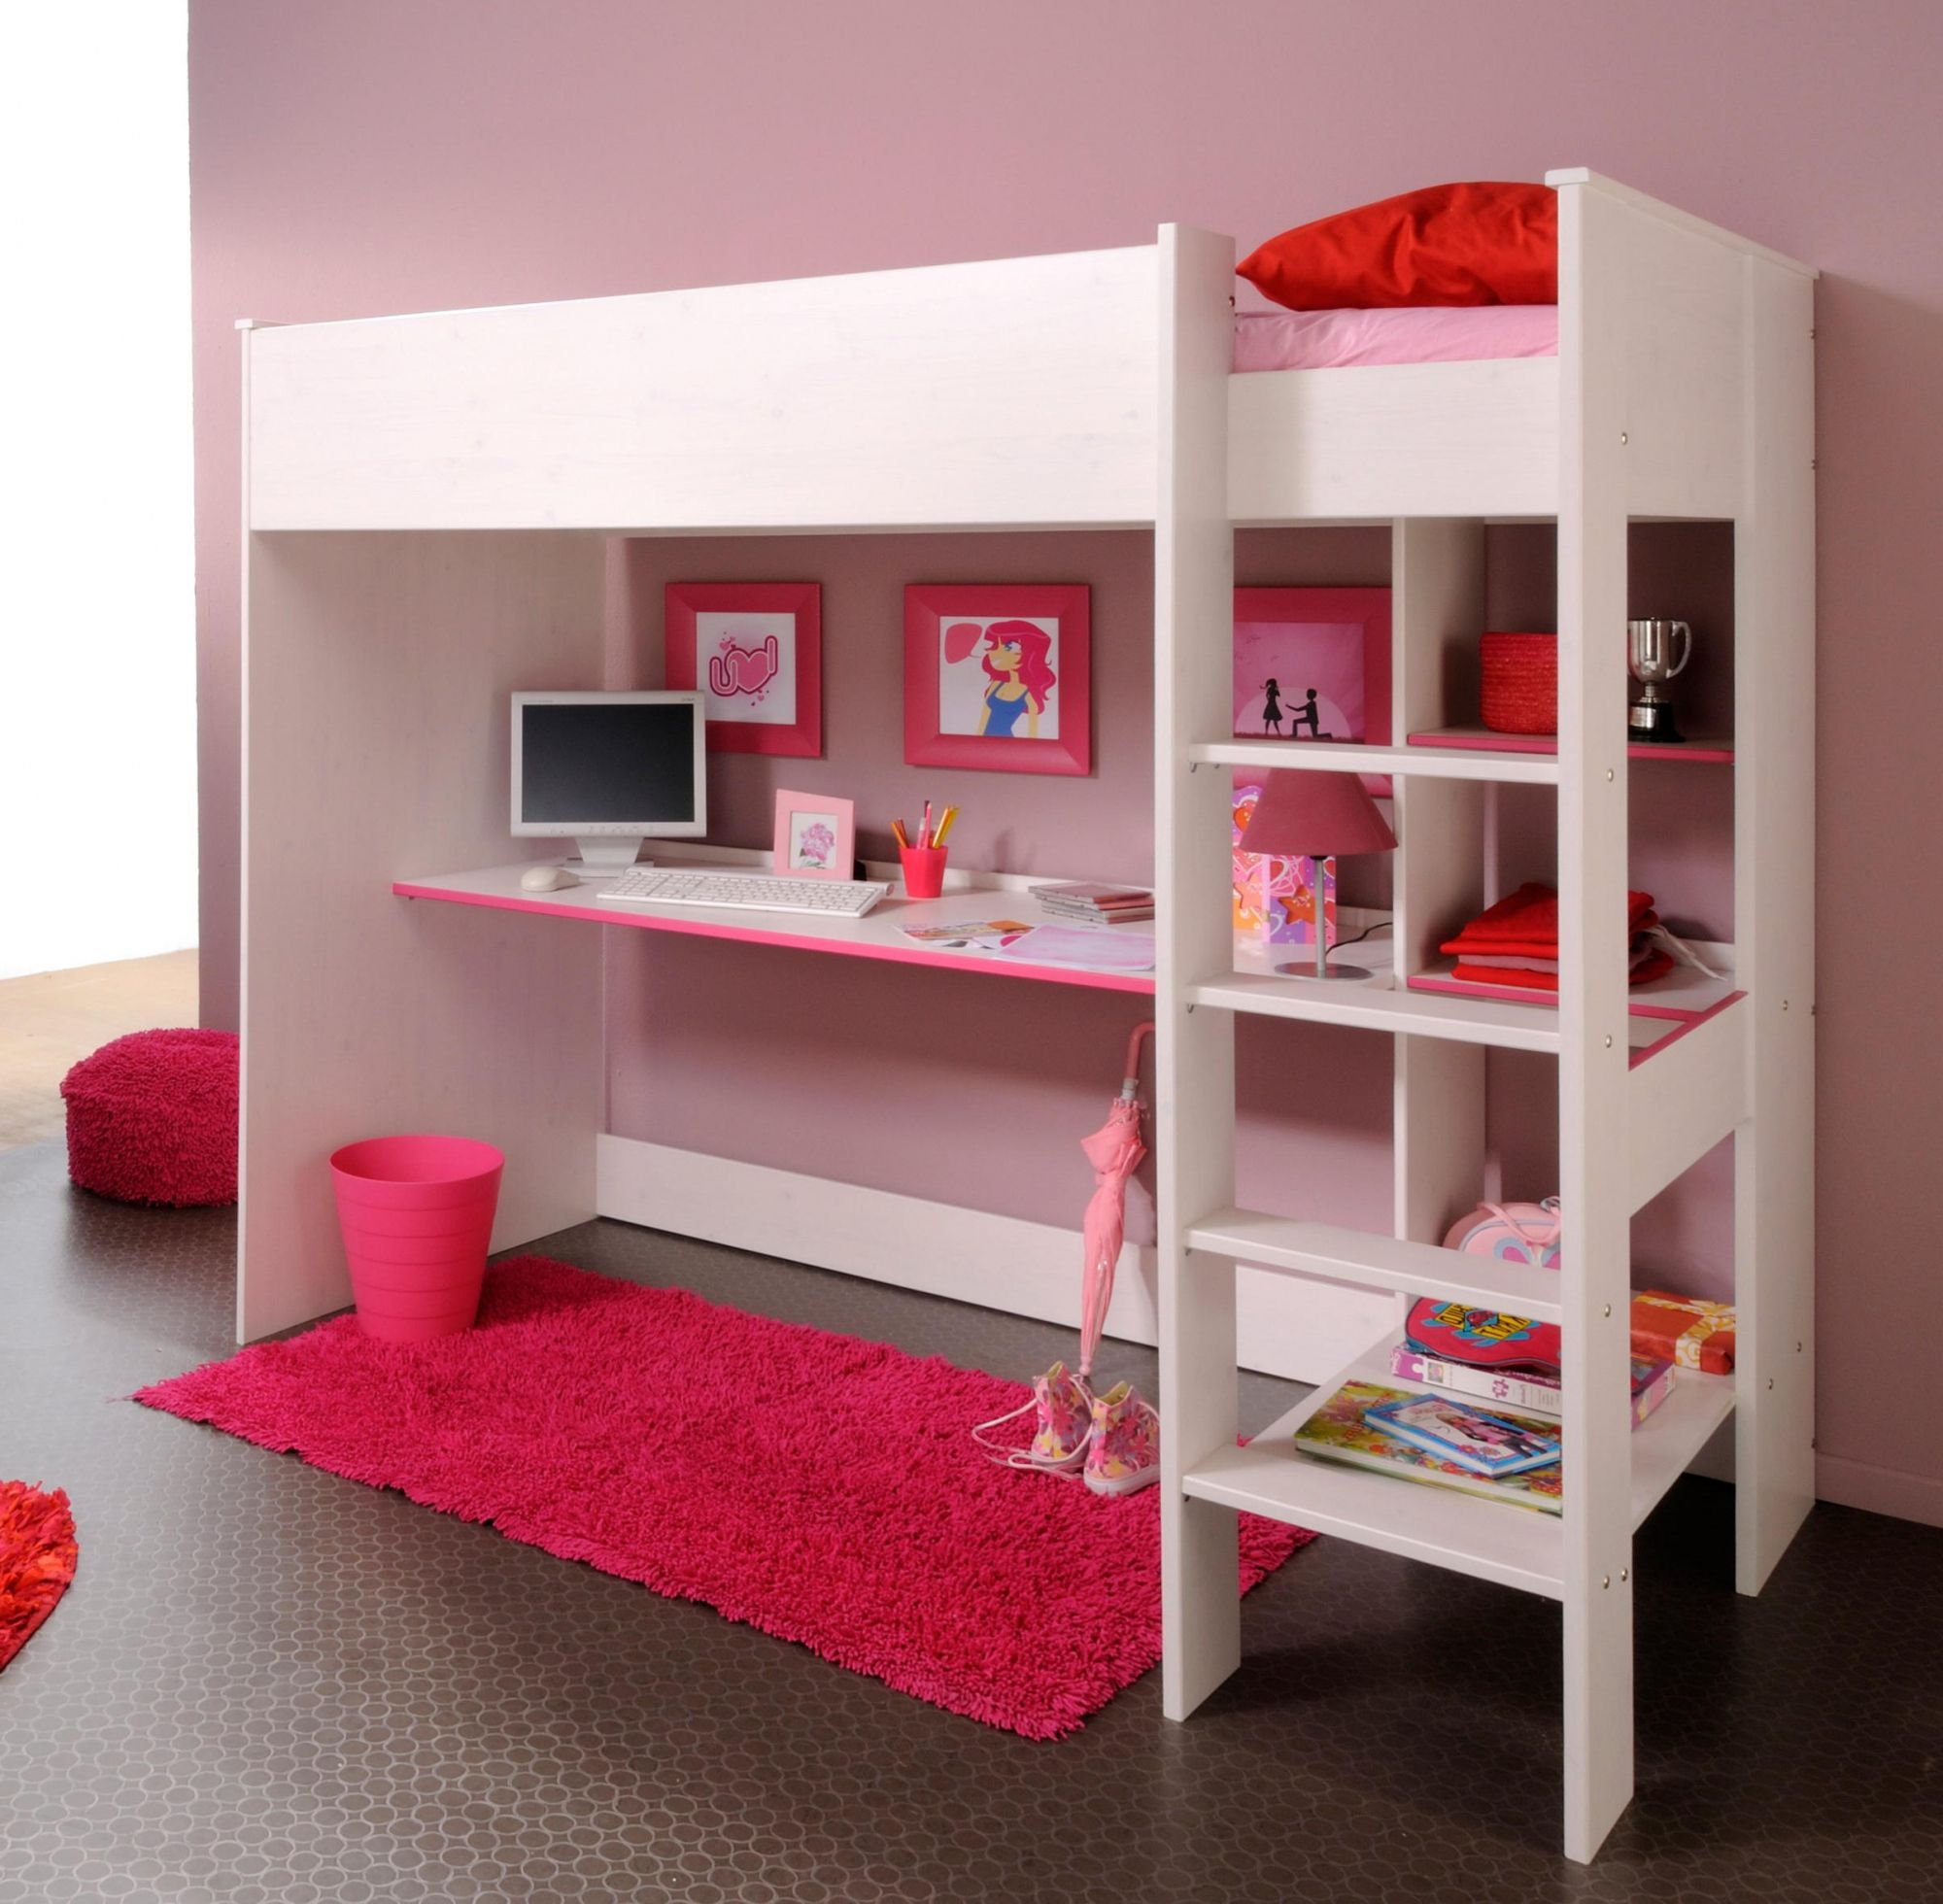 plans desk drawers pict inspiring and snif wood ebth with hemnes bunk ikea inspiration of popular futon bed